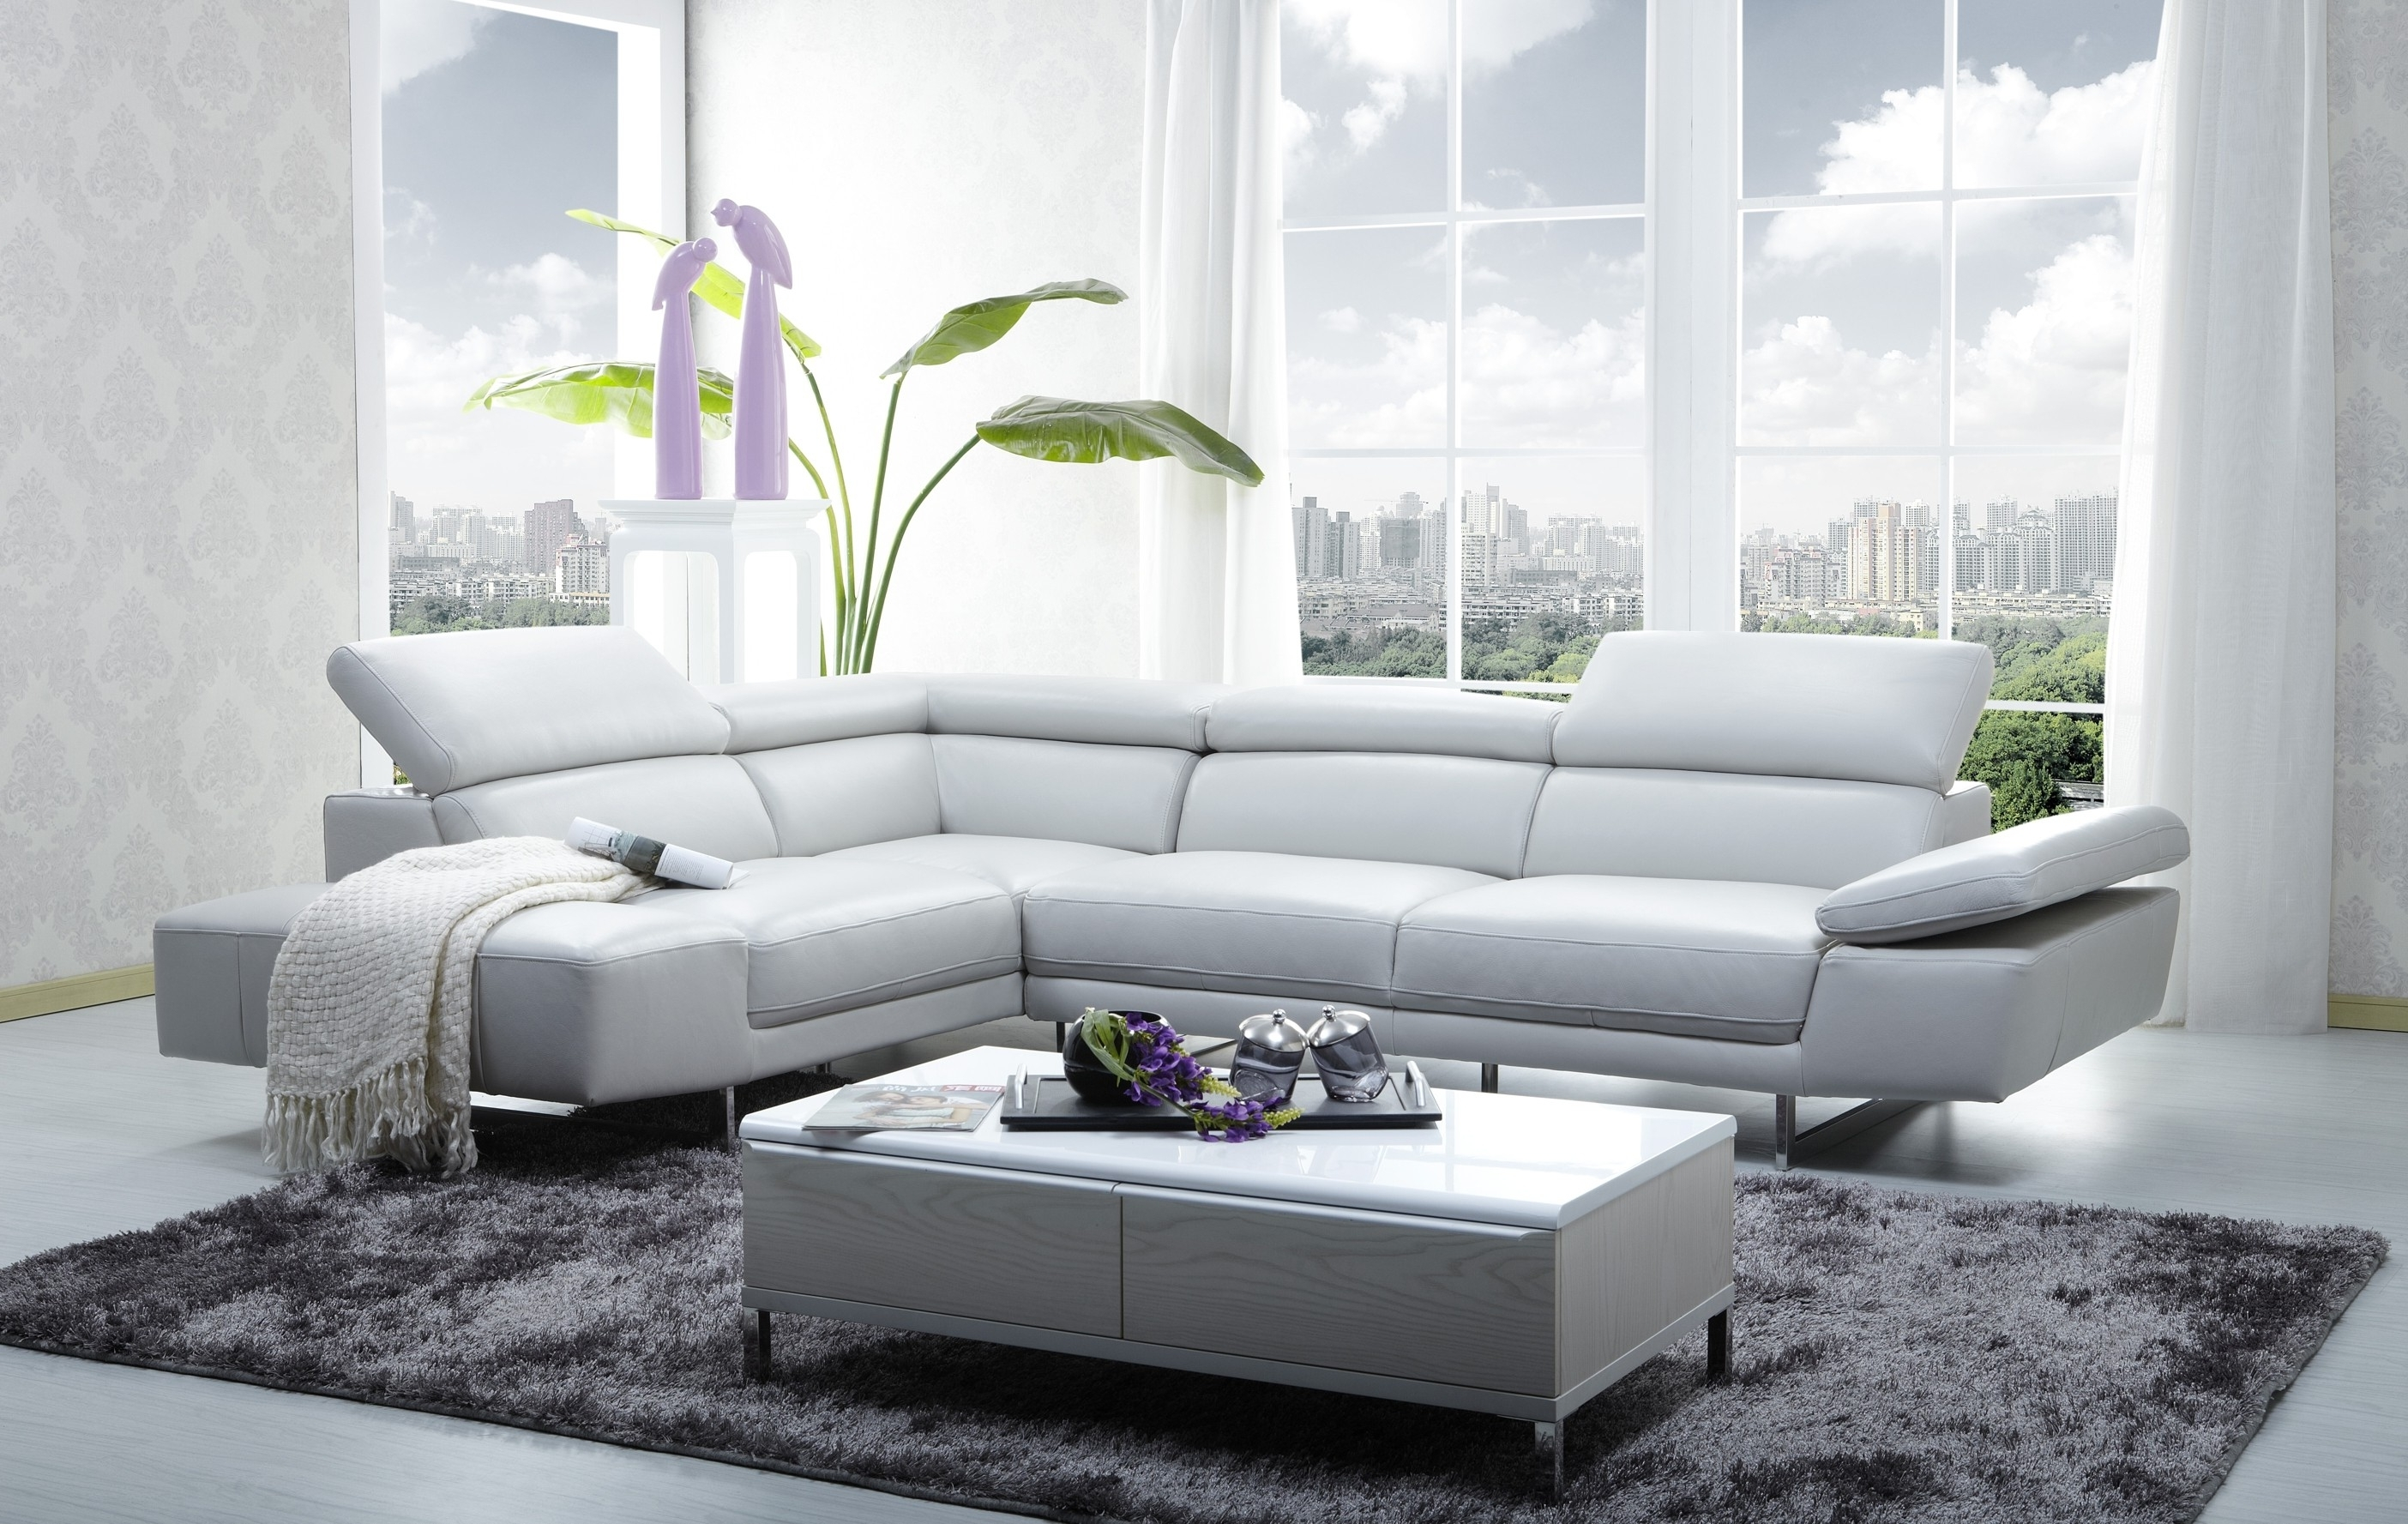 Modern Sofas With Regard To 2018 1717 Italian Leather Modern Sectional Sofa (View 2 of 15)